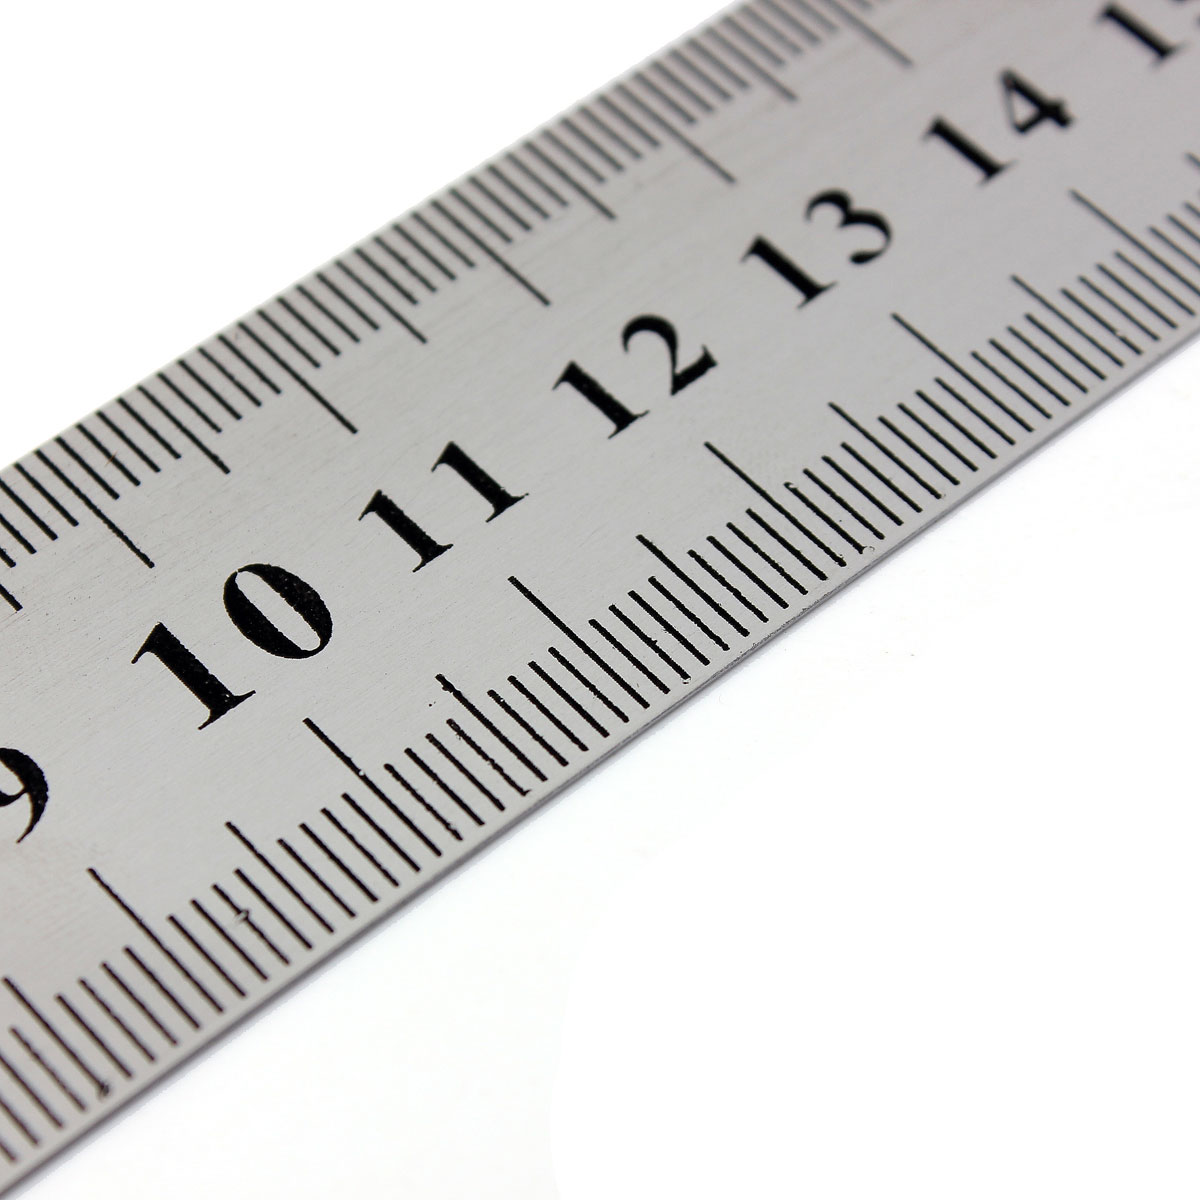 30cm stainless steel metal ruler rule precision double sided measuring tool new ebay. Black Bedroom Furniture Sets. Home Design Ideas